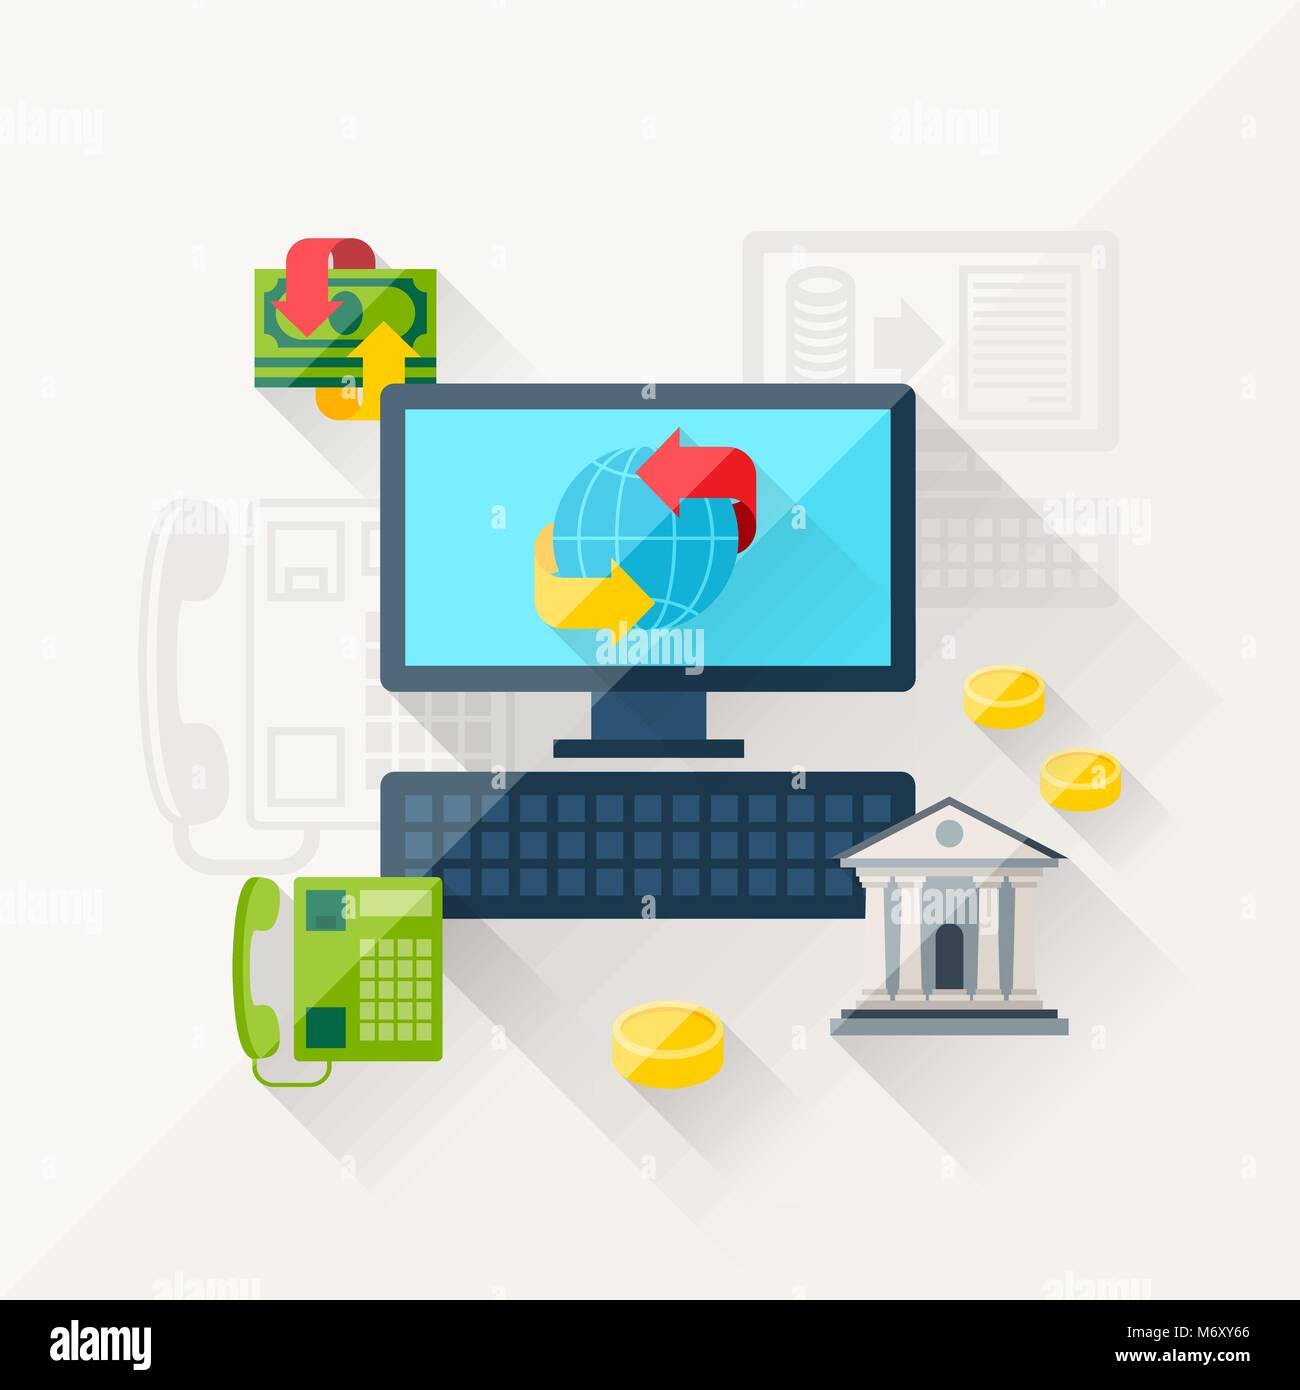 Illustration concept of banking online in flat design style - Stock Image